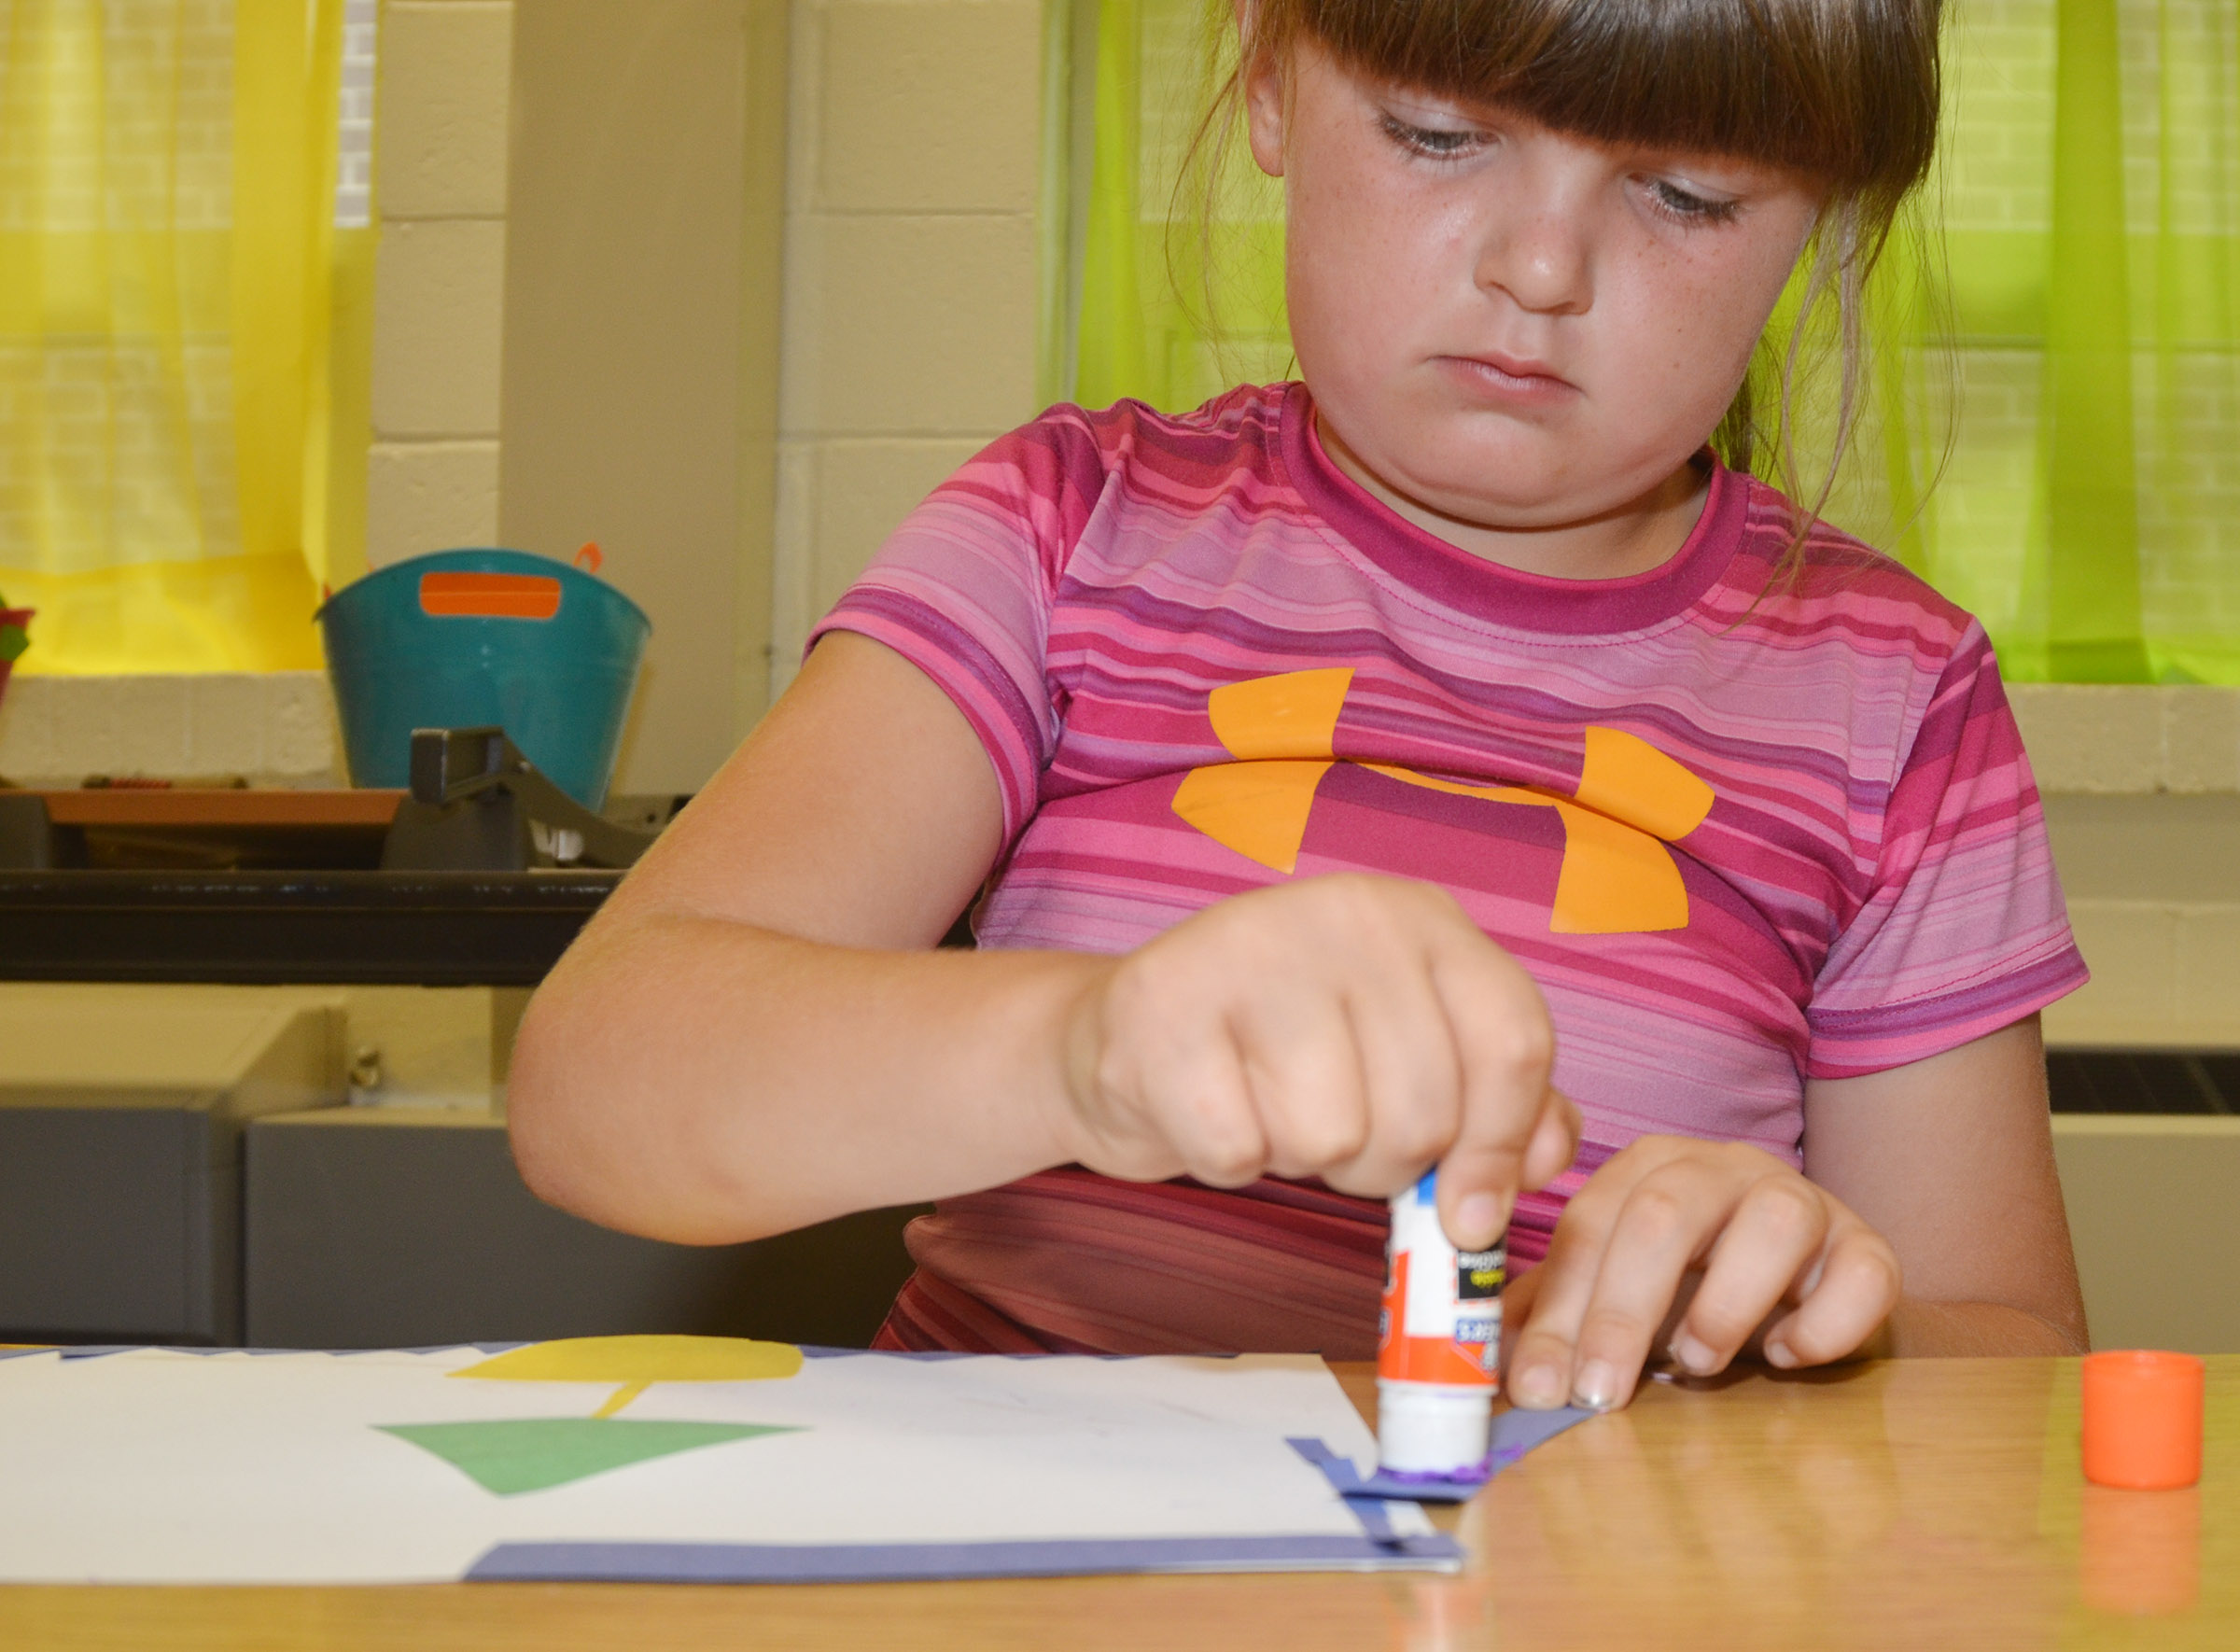 CES third-grader Kaleigh Wilhoite glues shapes on her construction paper as she creates her drawing.